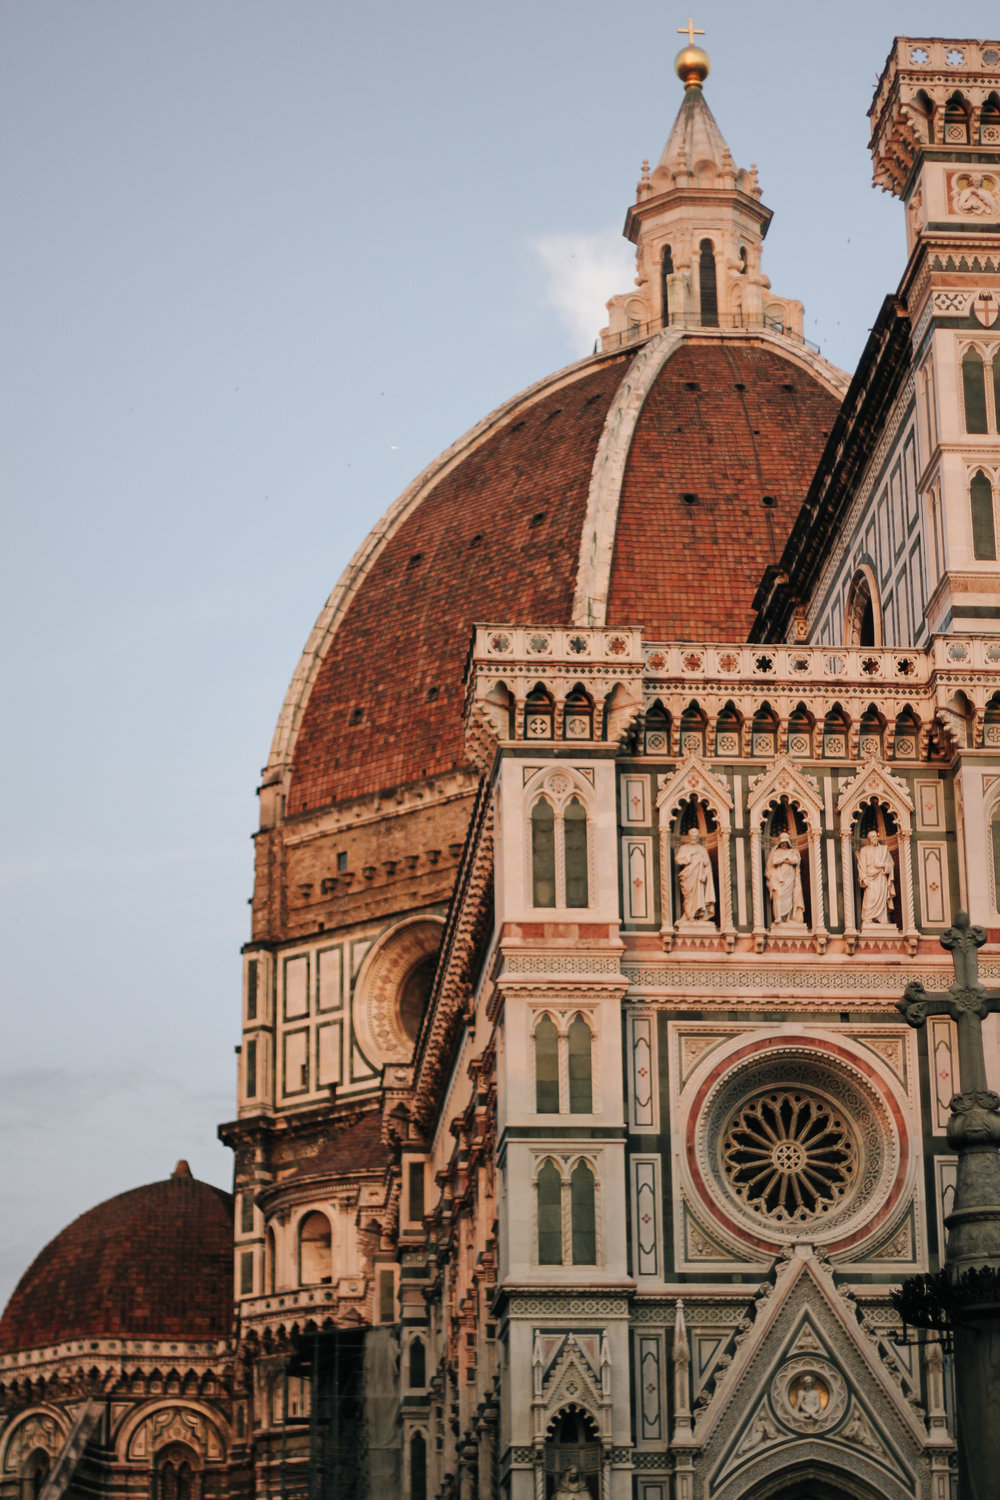 The Dome designed by Filippo Brunelleschi. The double shell brick dome was the largest in Europe.